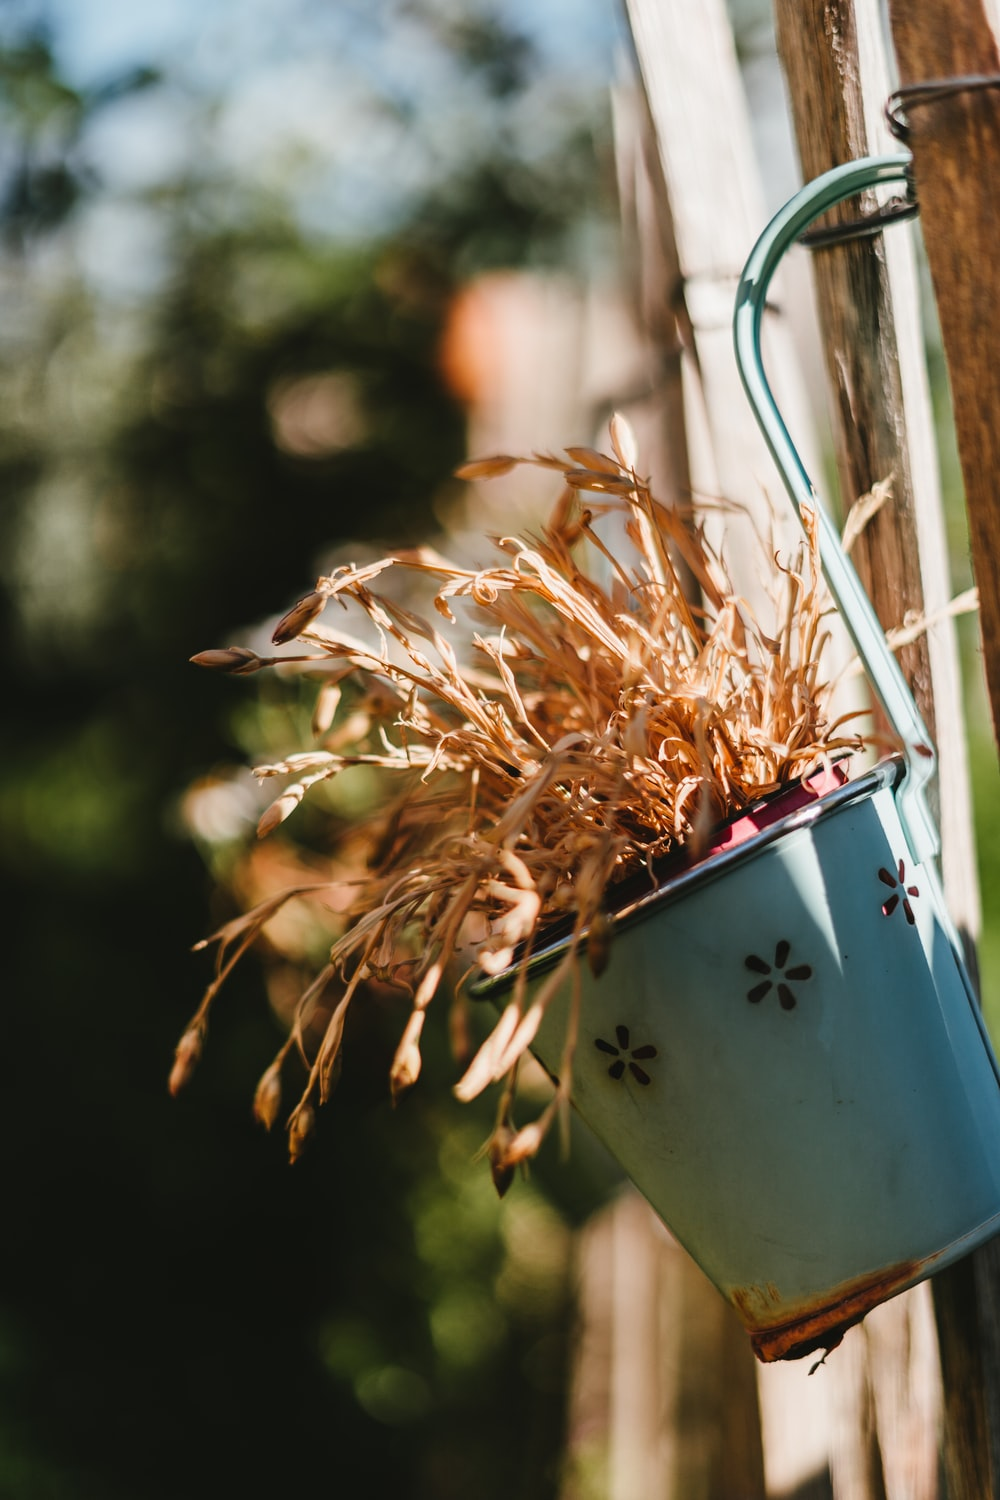 white and blue bucket with brown dried leaves